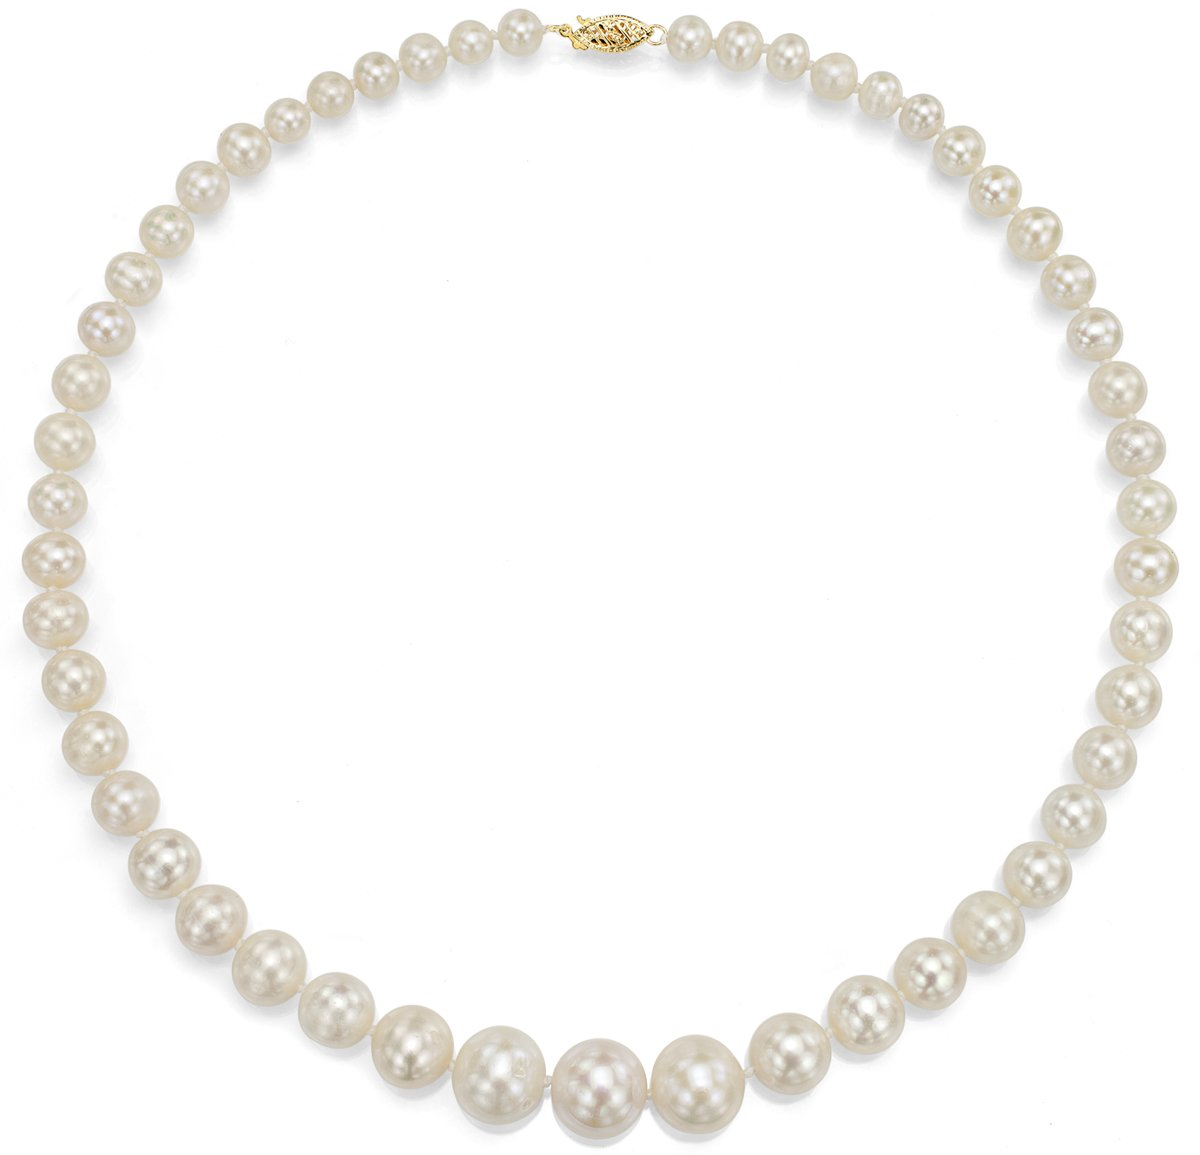 14K Yellow Gold White Cultured Freshwatwer Pearl Necklace Bridal Jewelry Graduated 6-11mm 18 inch